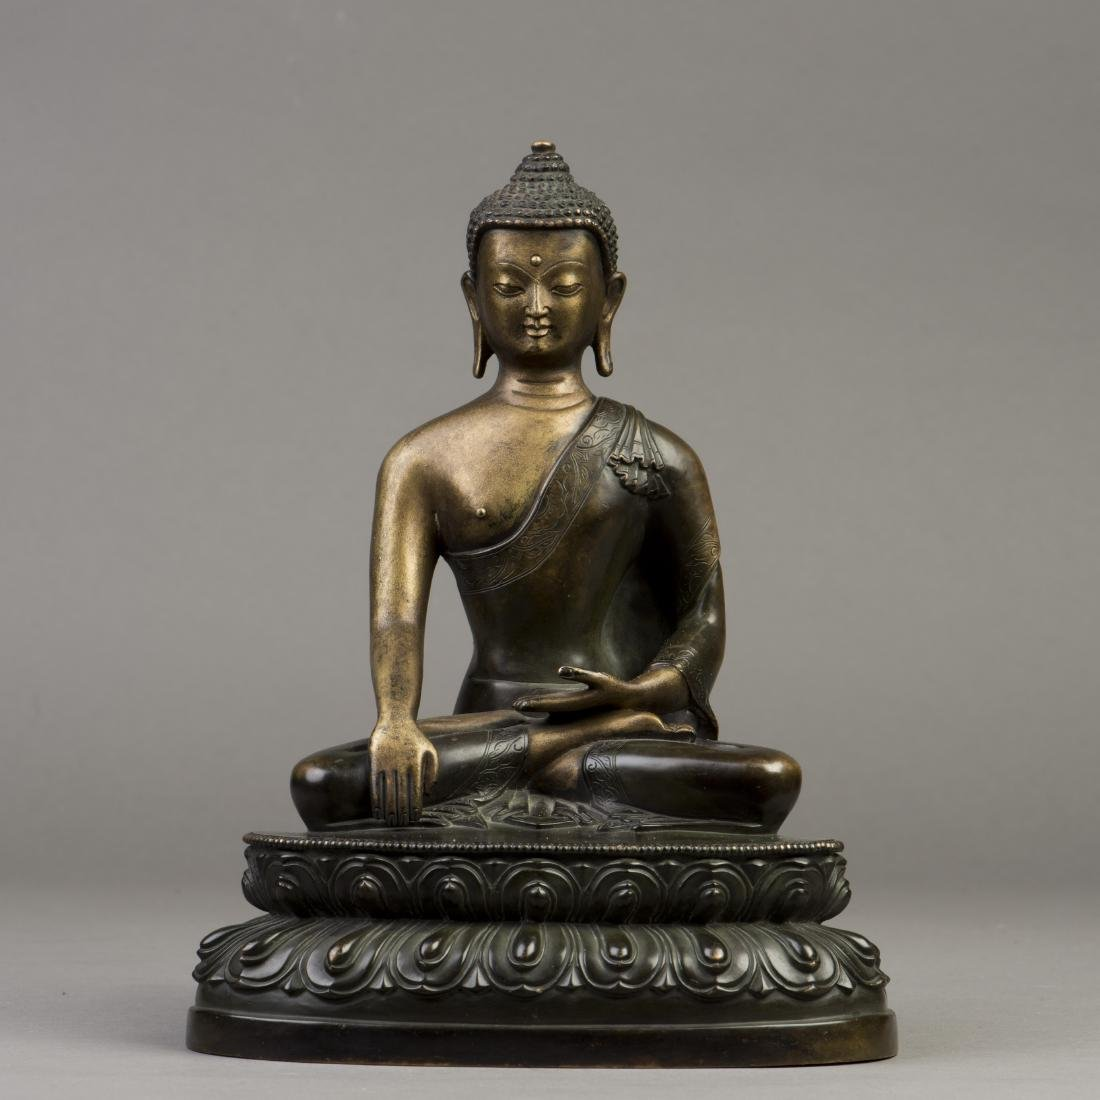 A GILT BRONZE SCULPTURE OF A BUDDHA